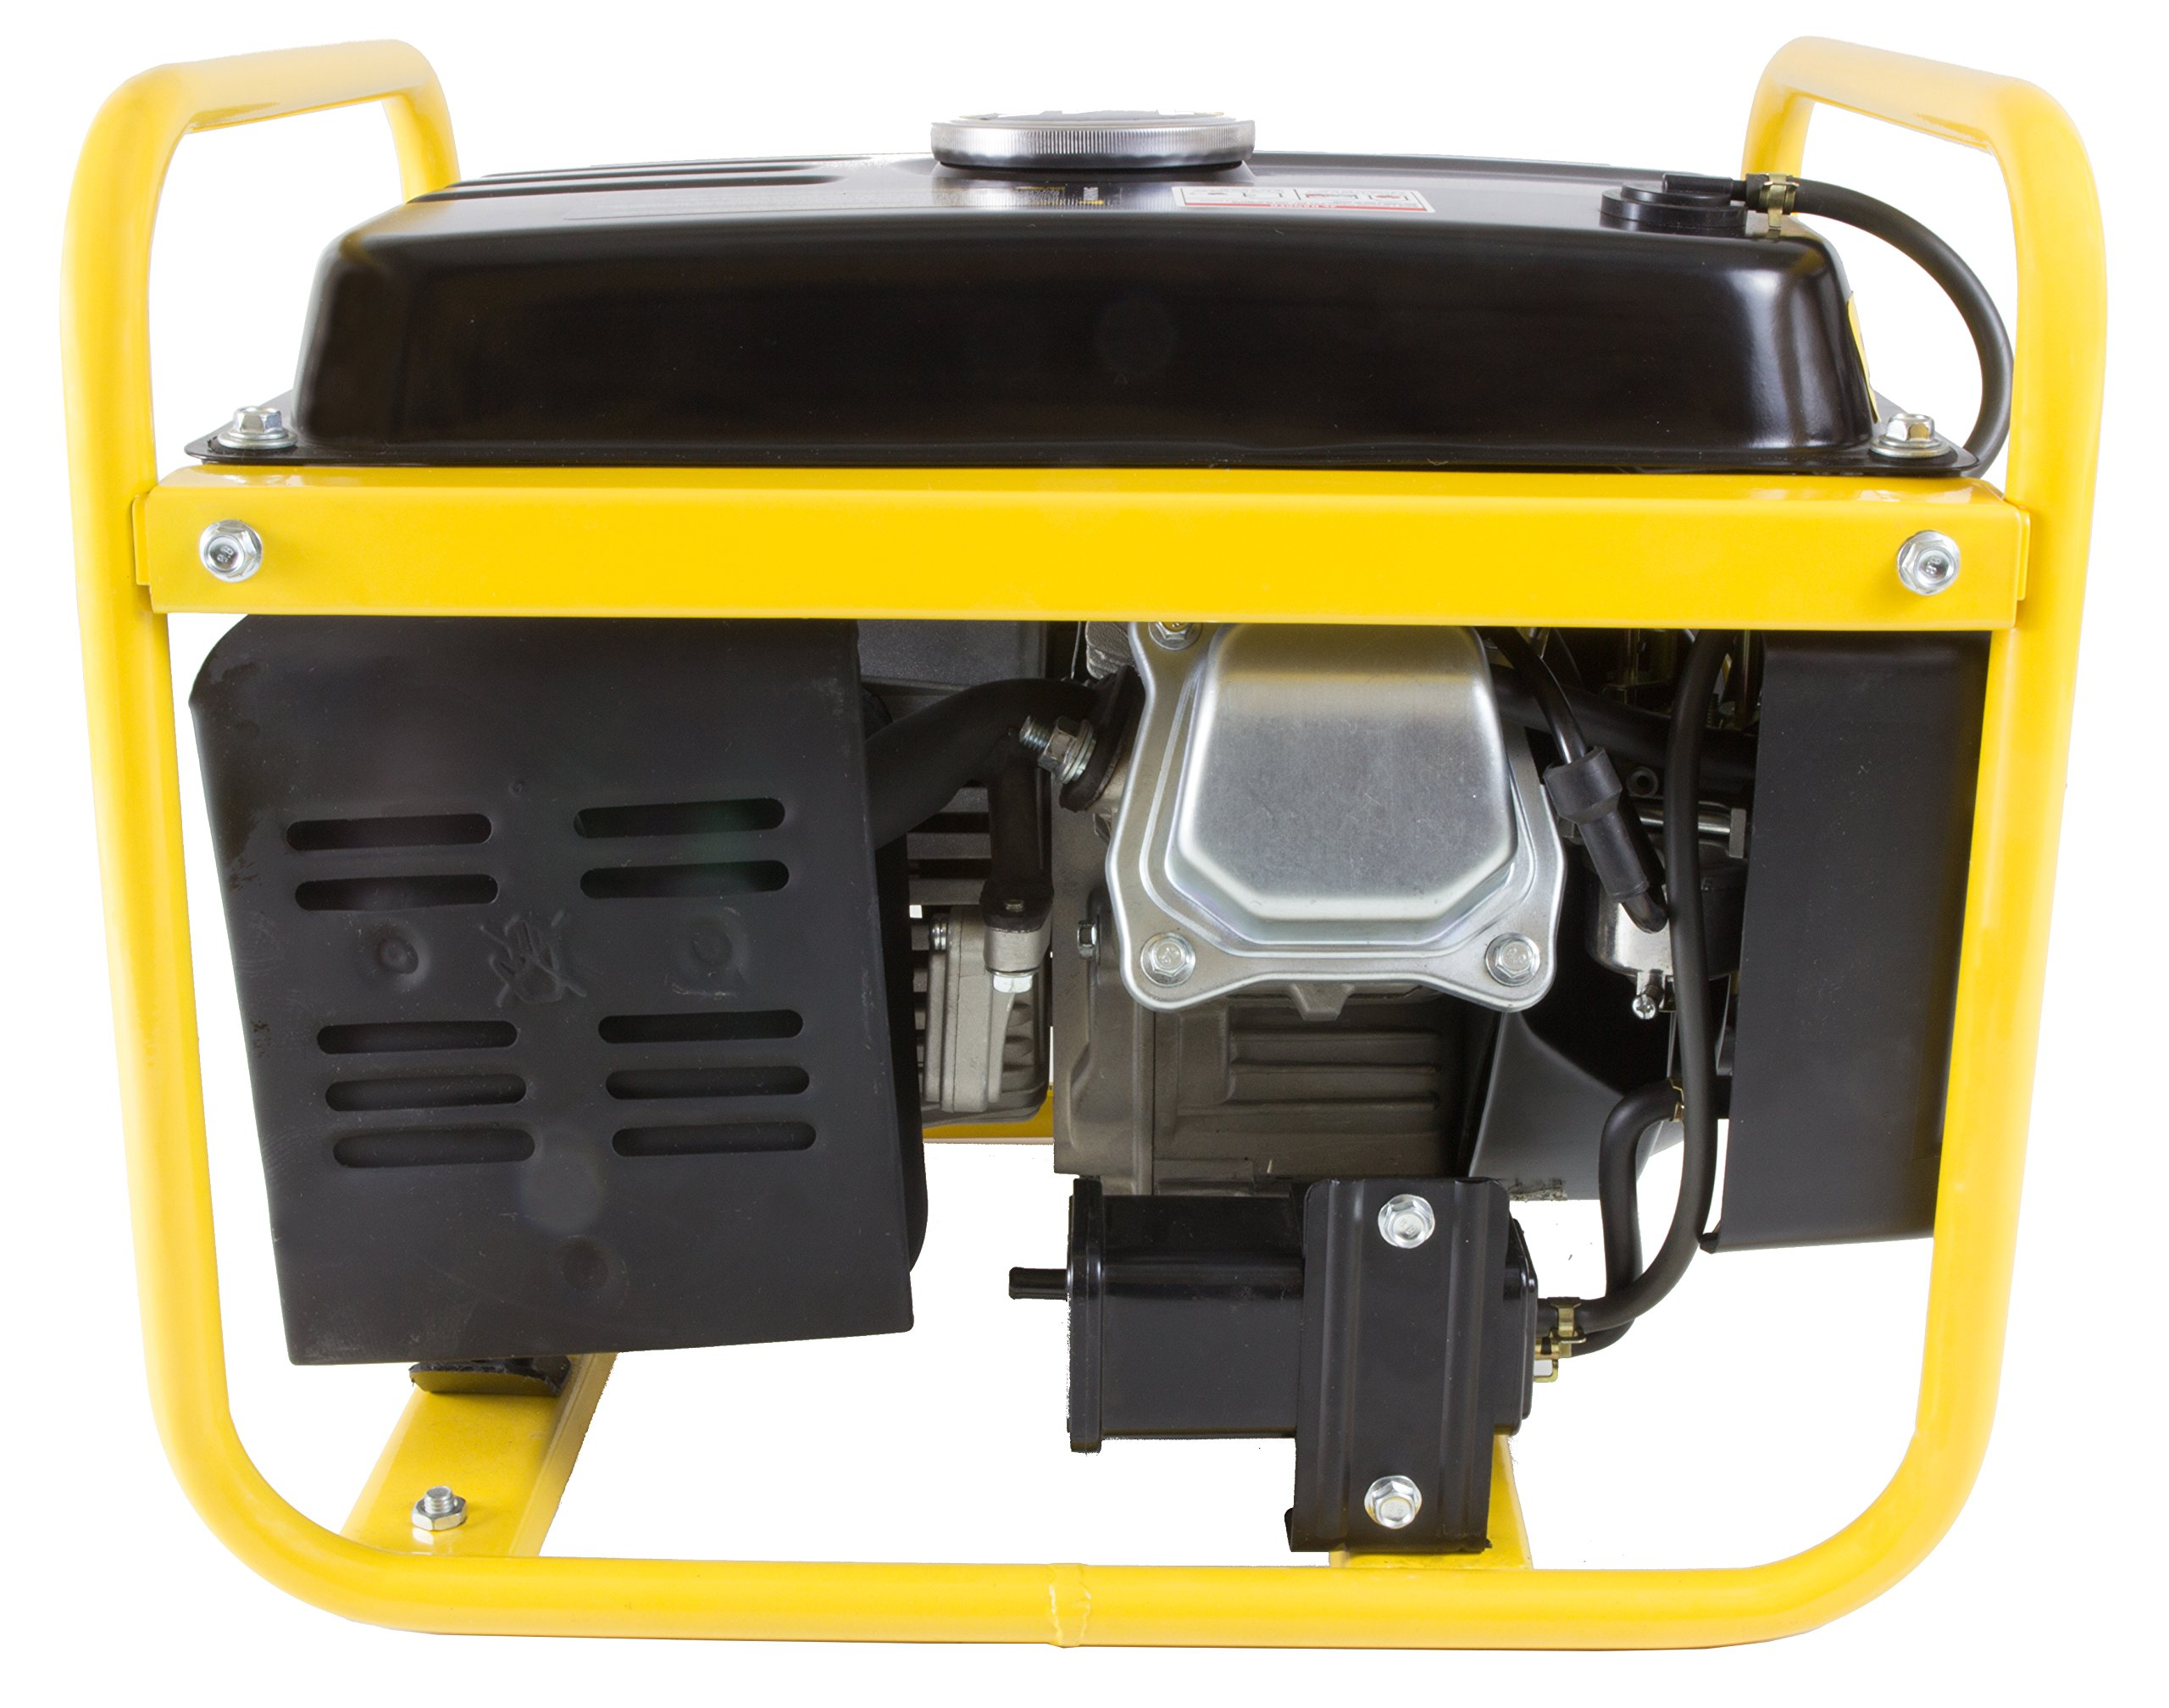 WEN 56180, 1500 Running Watts/1800 Starting Watts, Gas Powered Portable Generator, CARB Compliant by WEN (Image #6)